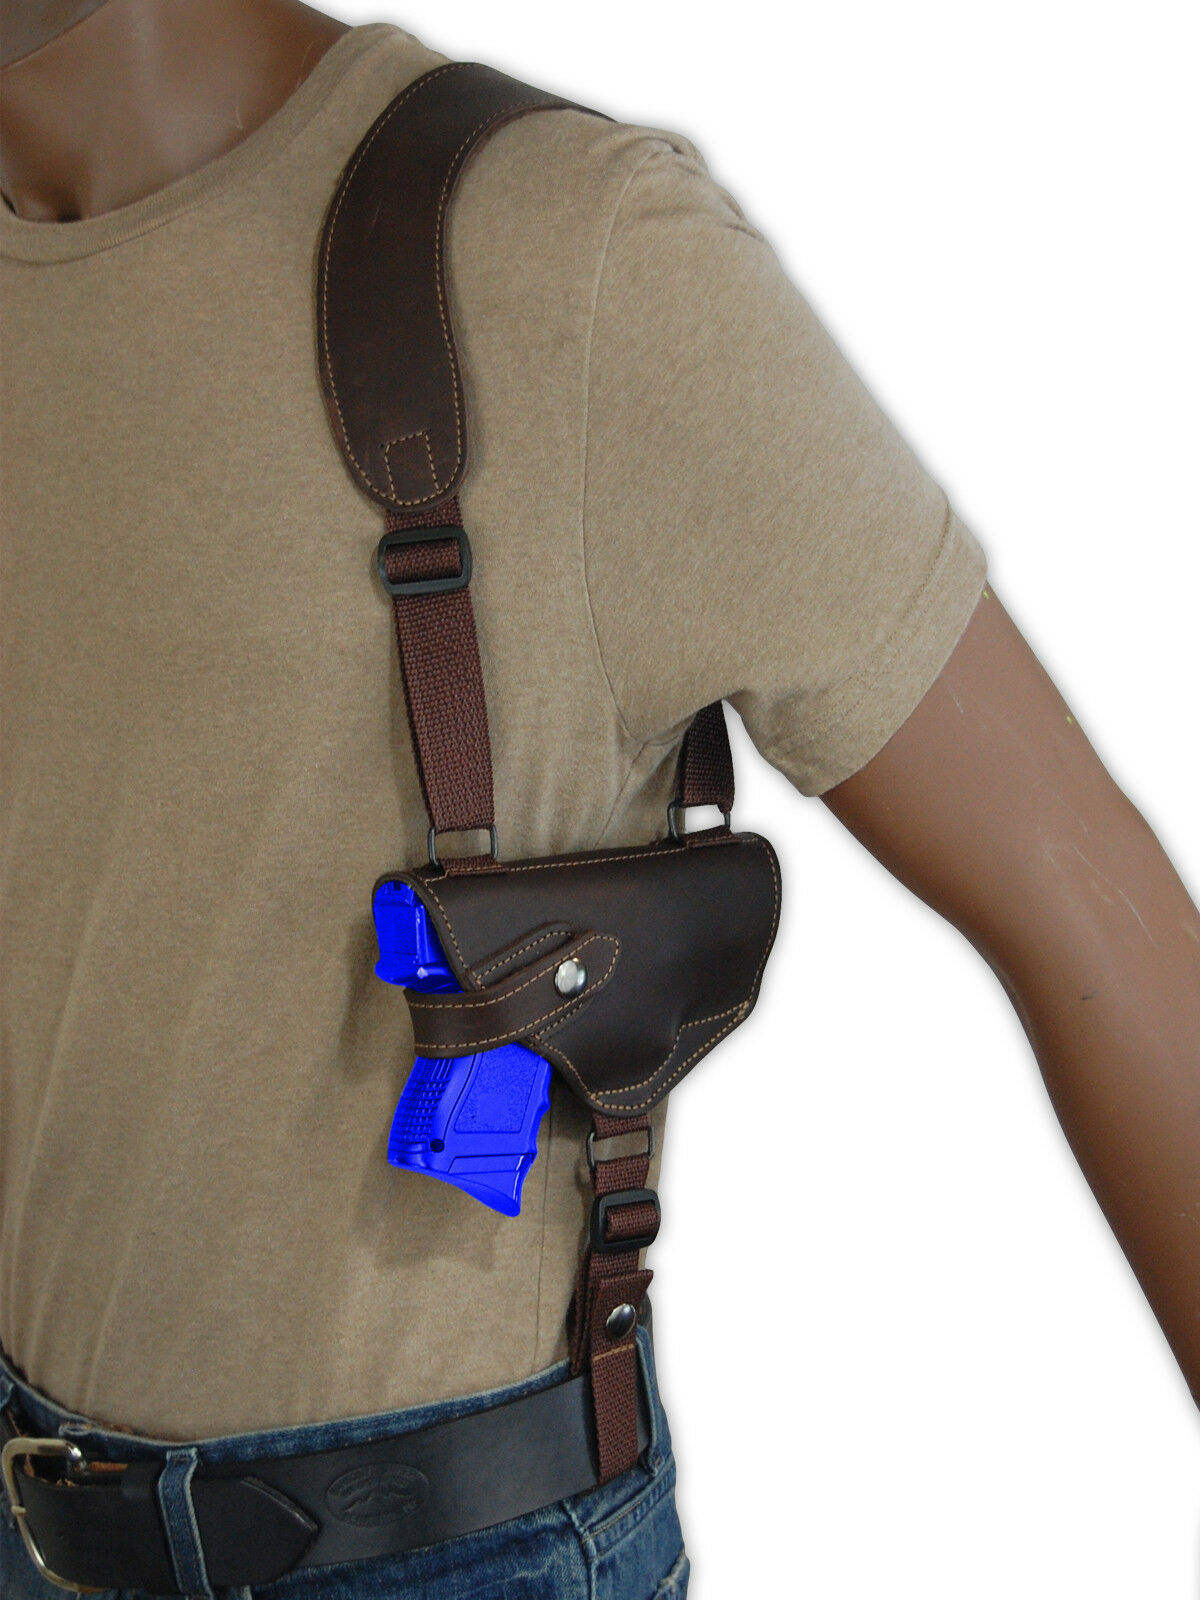 NEW Barsony Horizontal Braun Leder Shoulder 9mm Holster Colt Kimber Comp 9mm Shoulder 40 45 9a7012